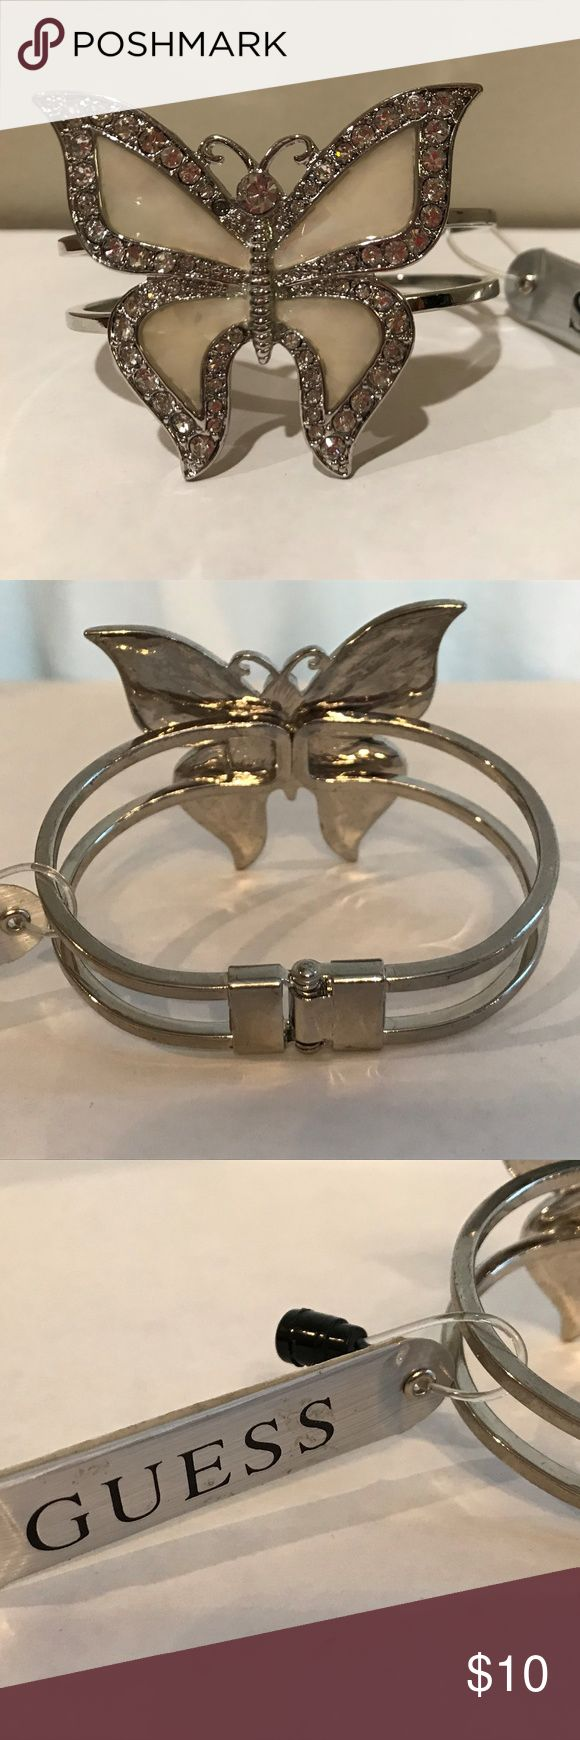 "Guess Butterfly Hinged Bangle with Crystals A beautiful butterfly hinged bangle of cream mother-of-pearl-look body outlined in crystals. It still has the Guess tag attached but unfortunately it is missing a small crystal at the top left of it's head. I didn't notice the missing crystal until I took the main picture. The butterfly measures 1-3/4""h x 2""w. Guess Jewelry Bracelets"